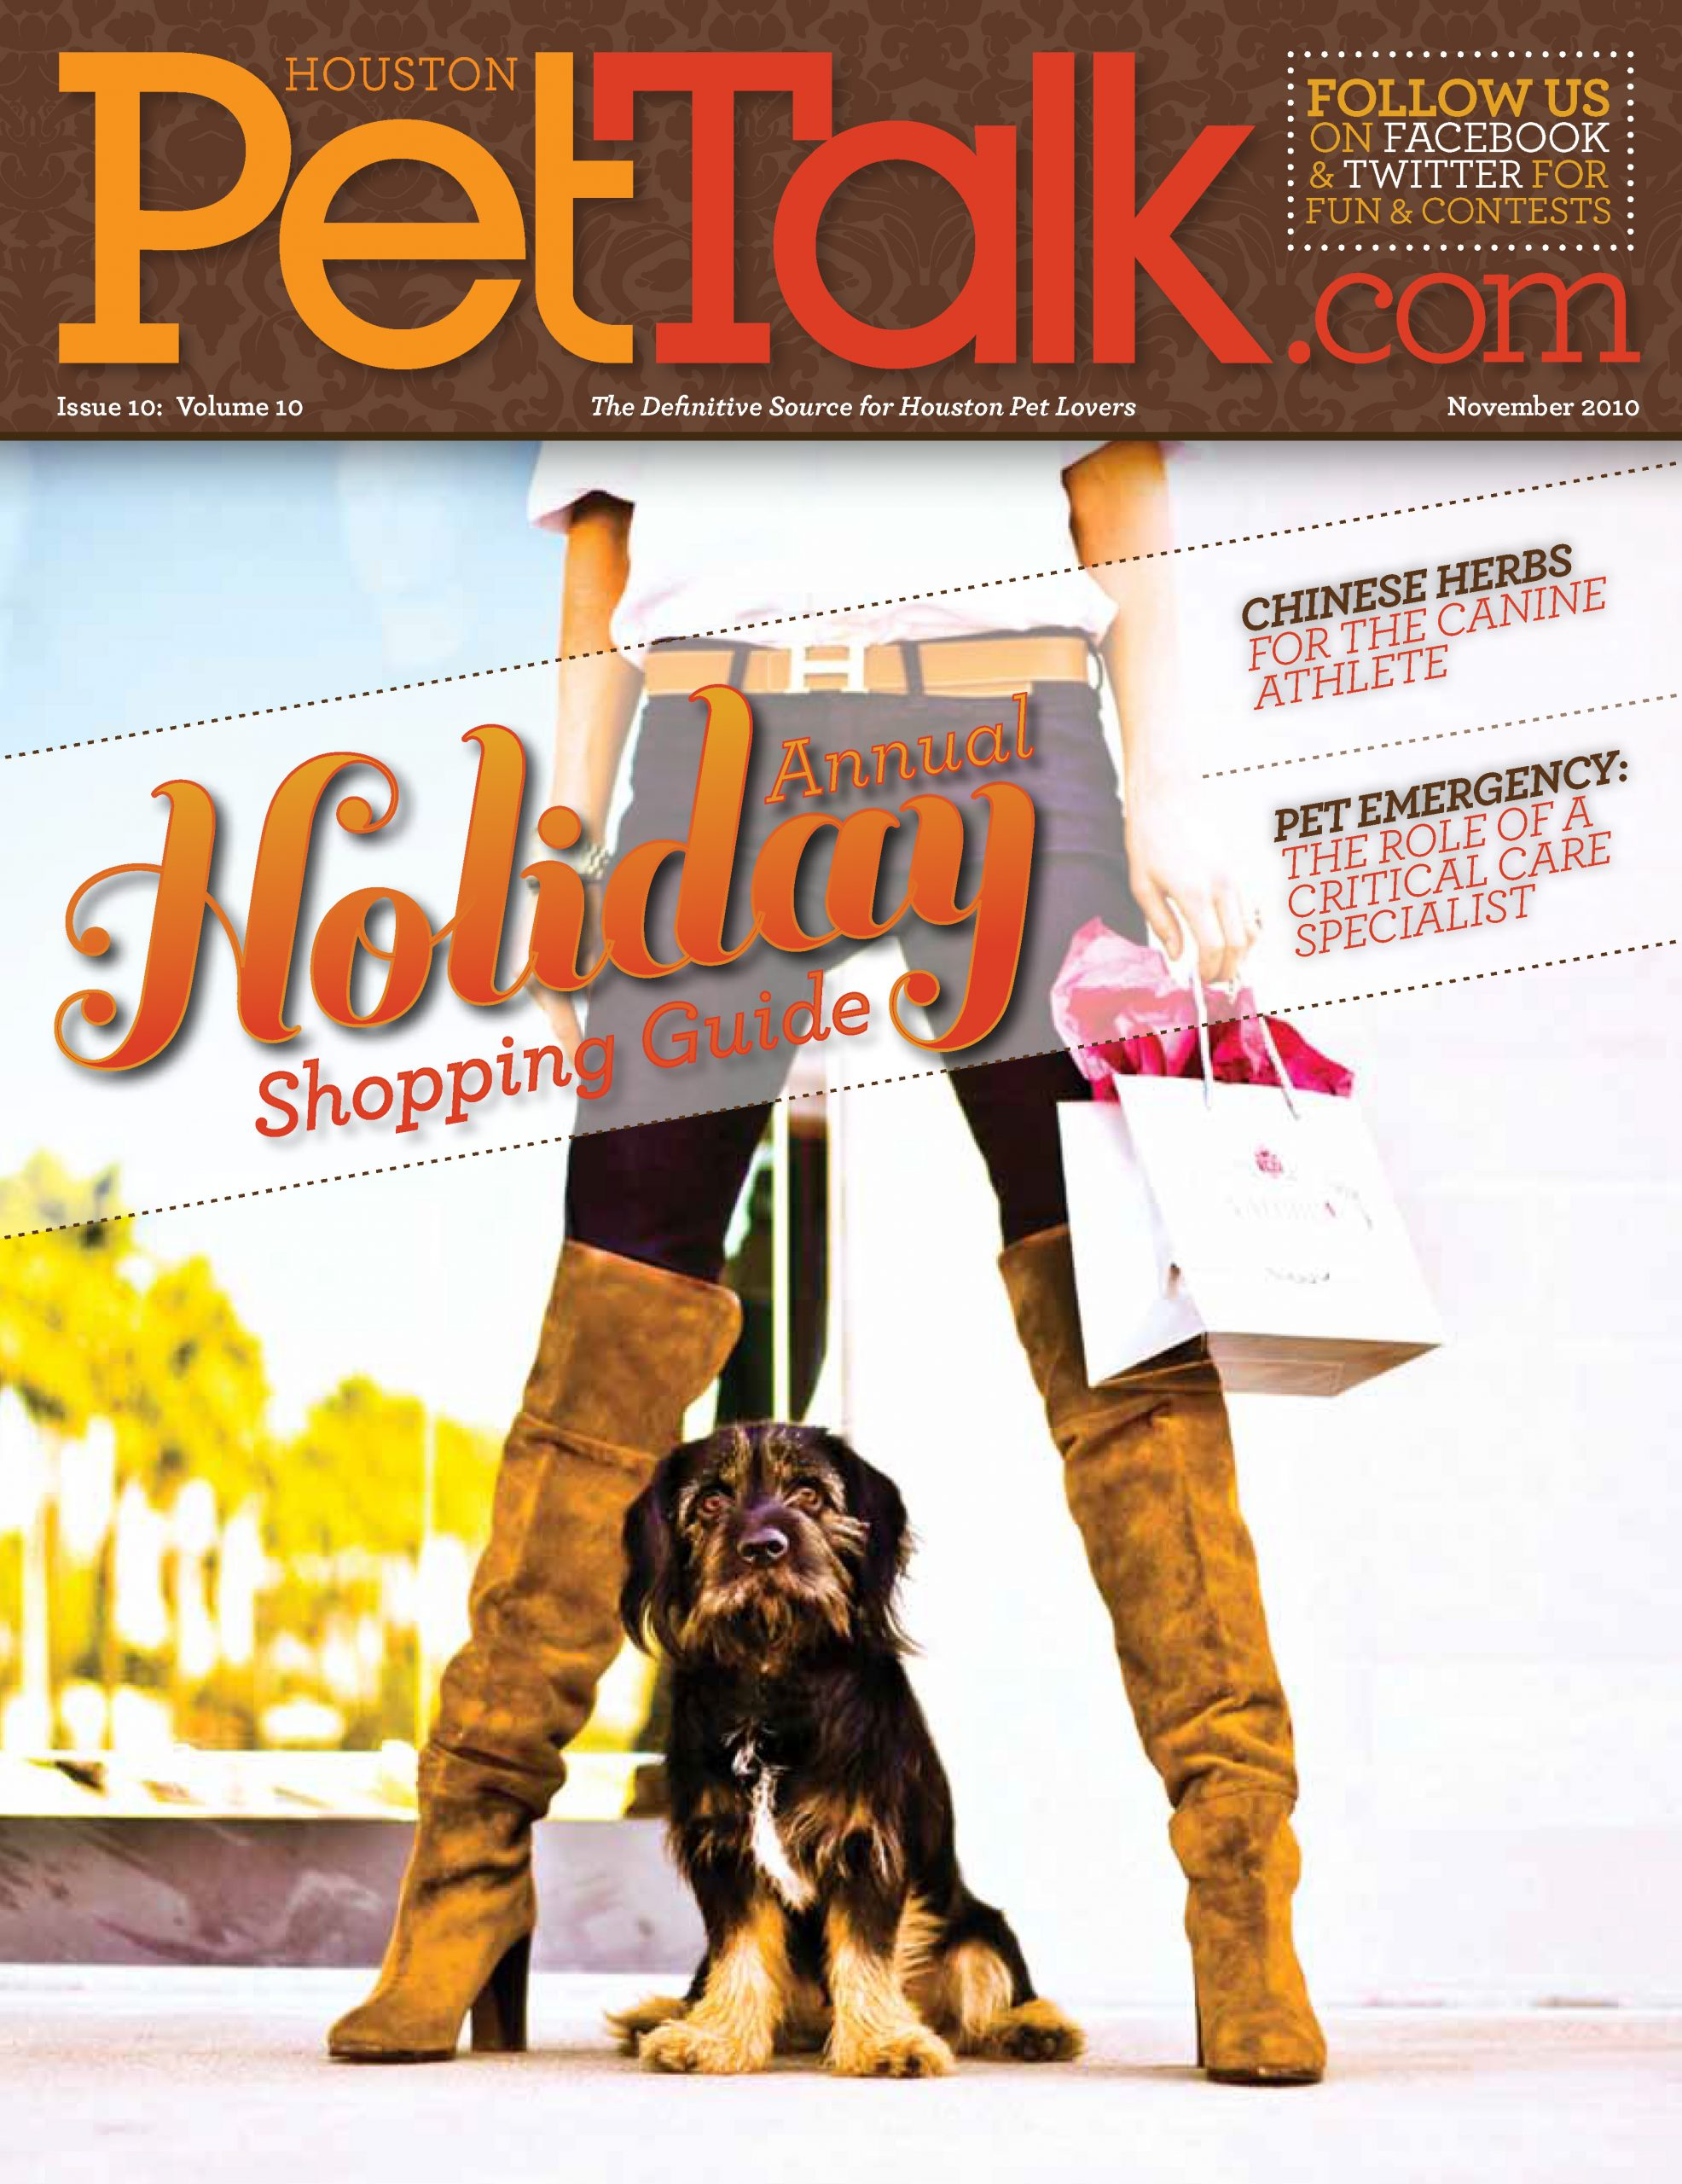 November 2010 Issue of Houston PetTalk